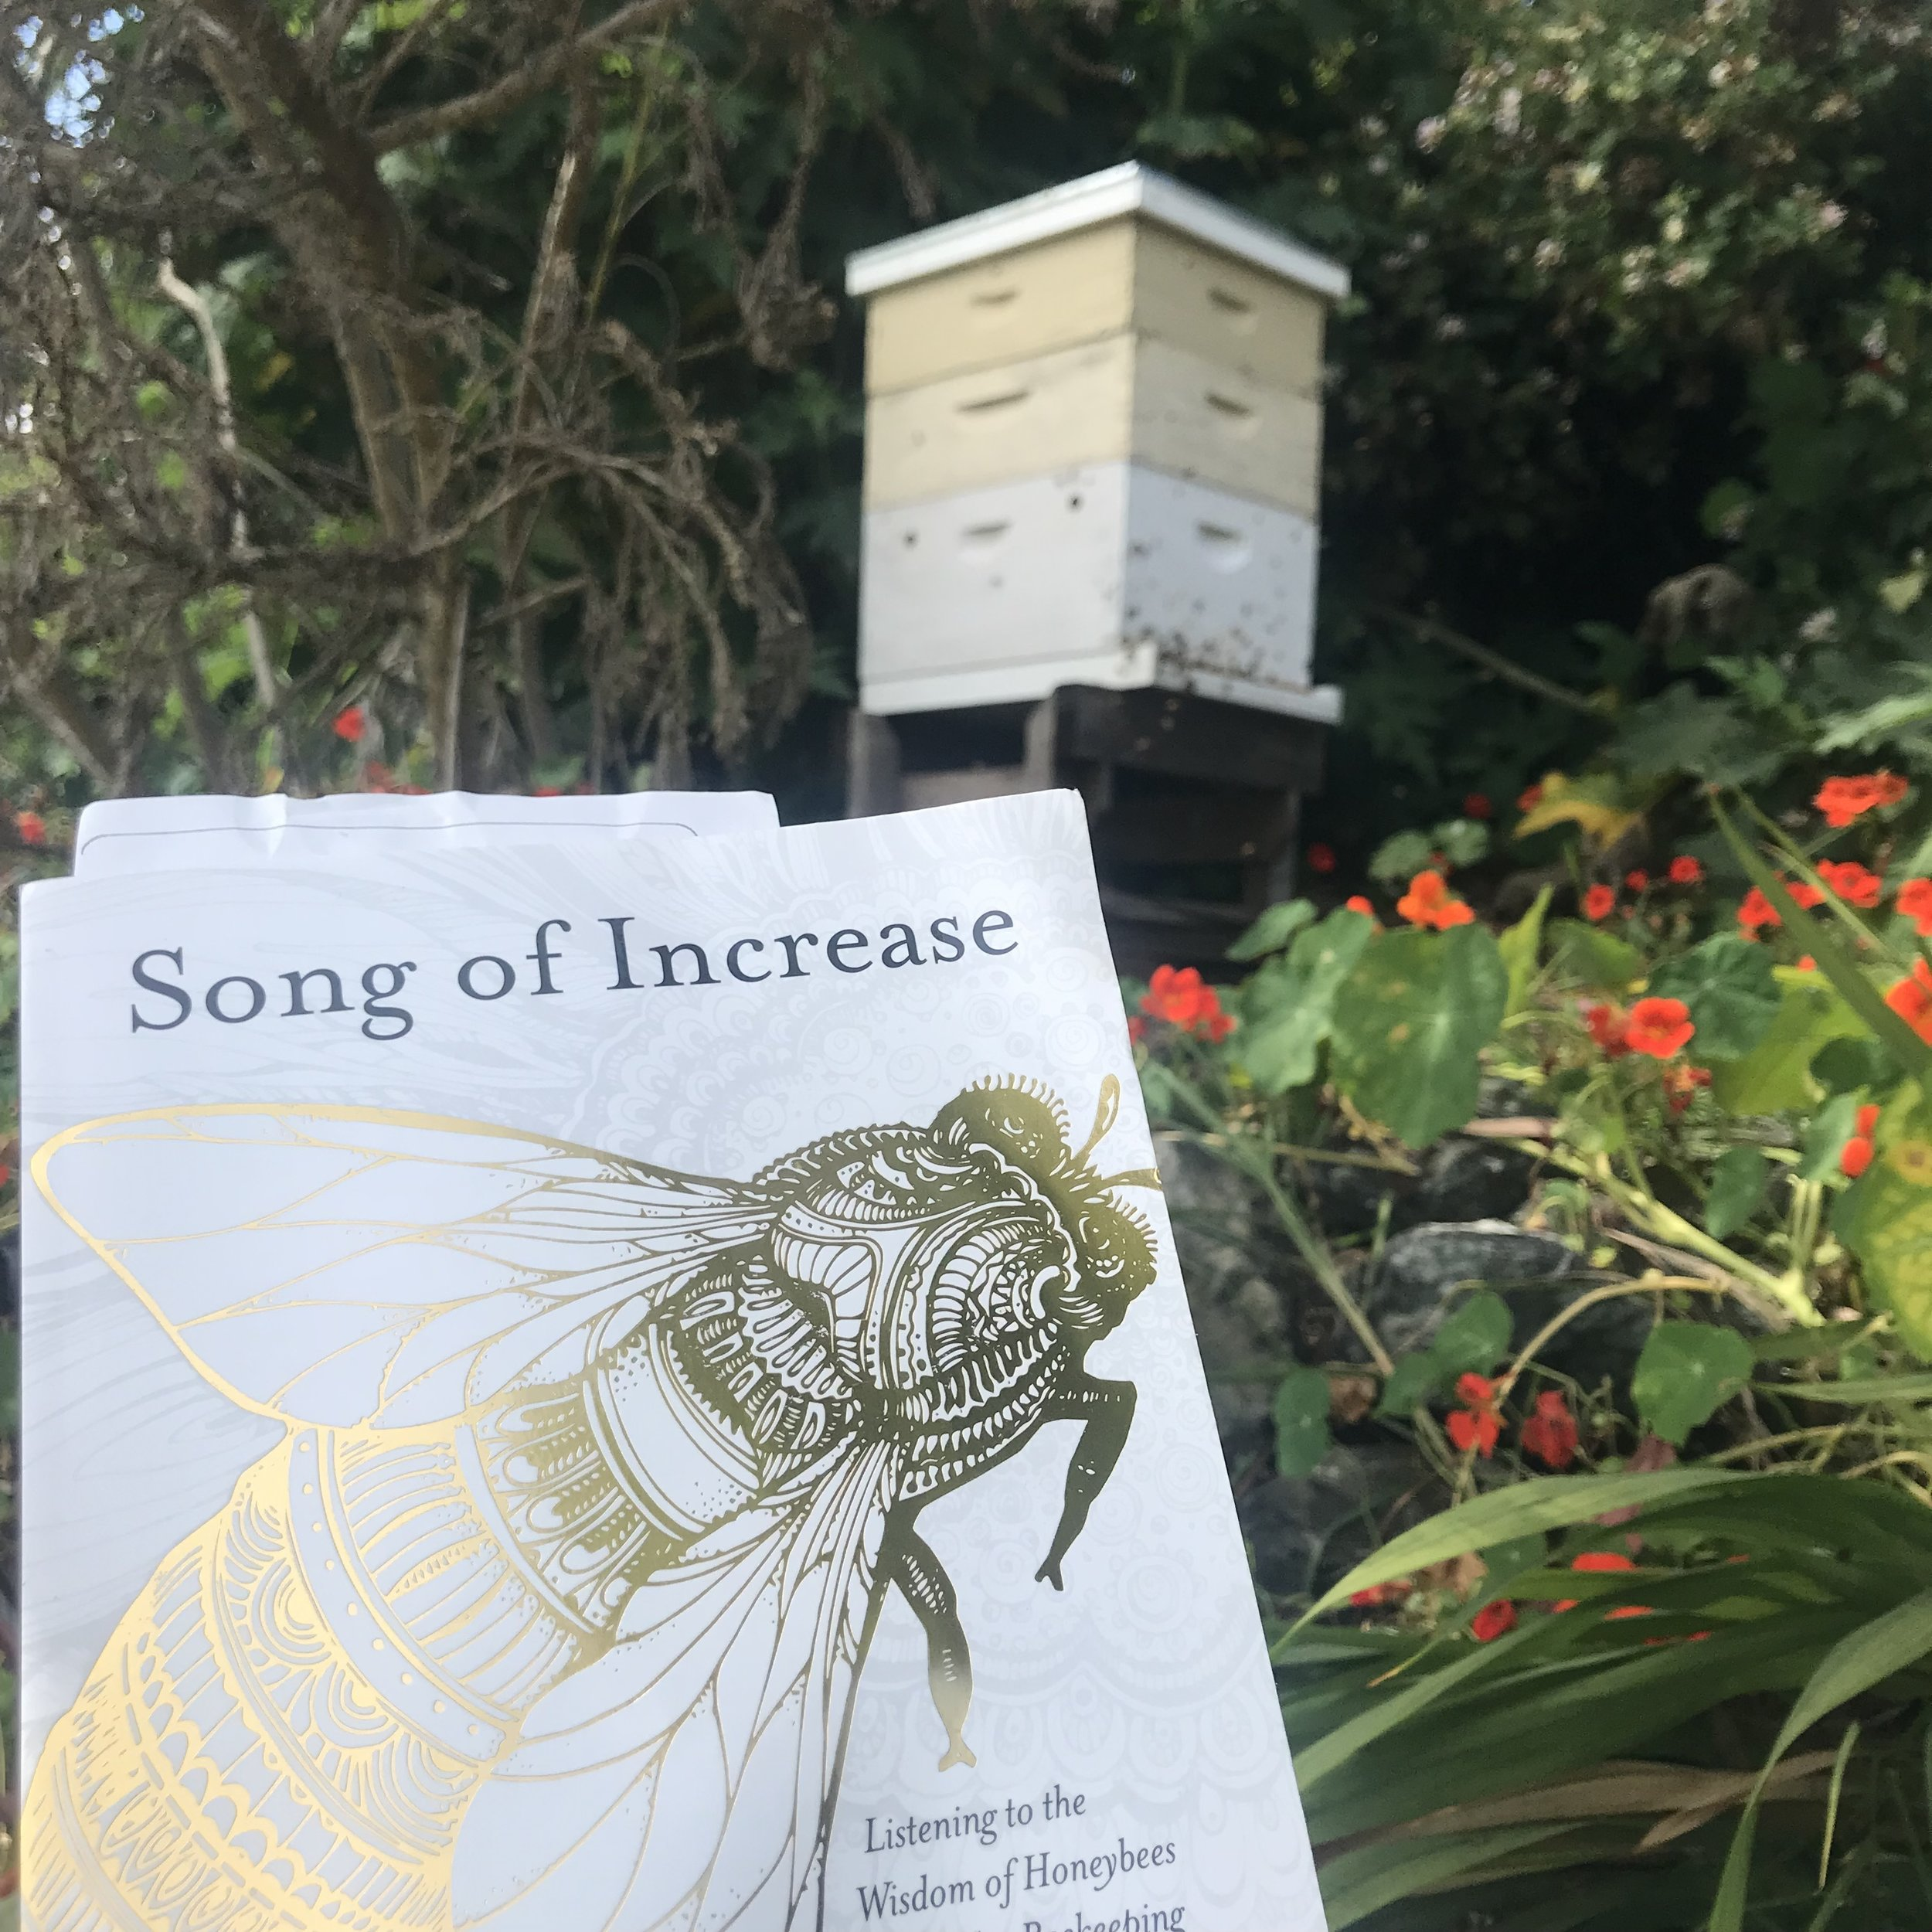 """""""Song of Increase: Listening to the Wisdom of Honeybees for Kinder Beekeeping and a Better World,"""" by Jacqueline Freeman"""